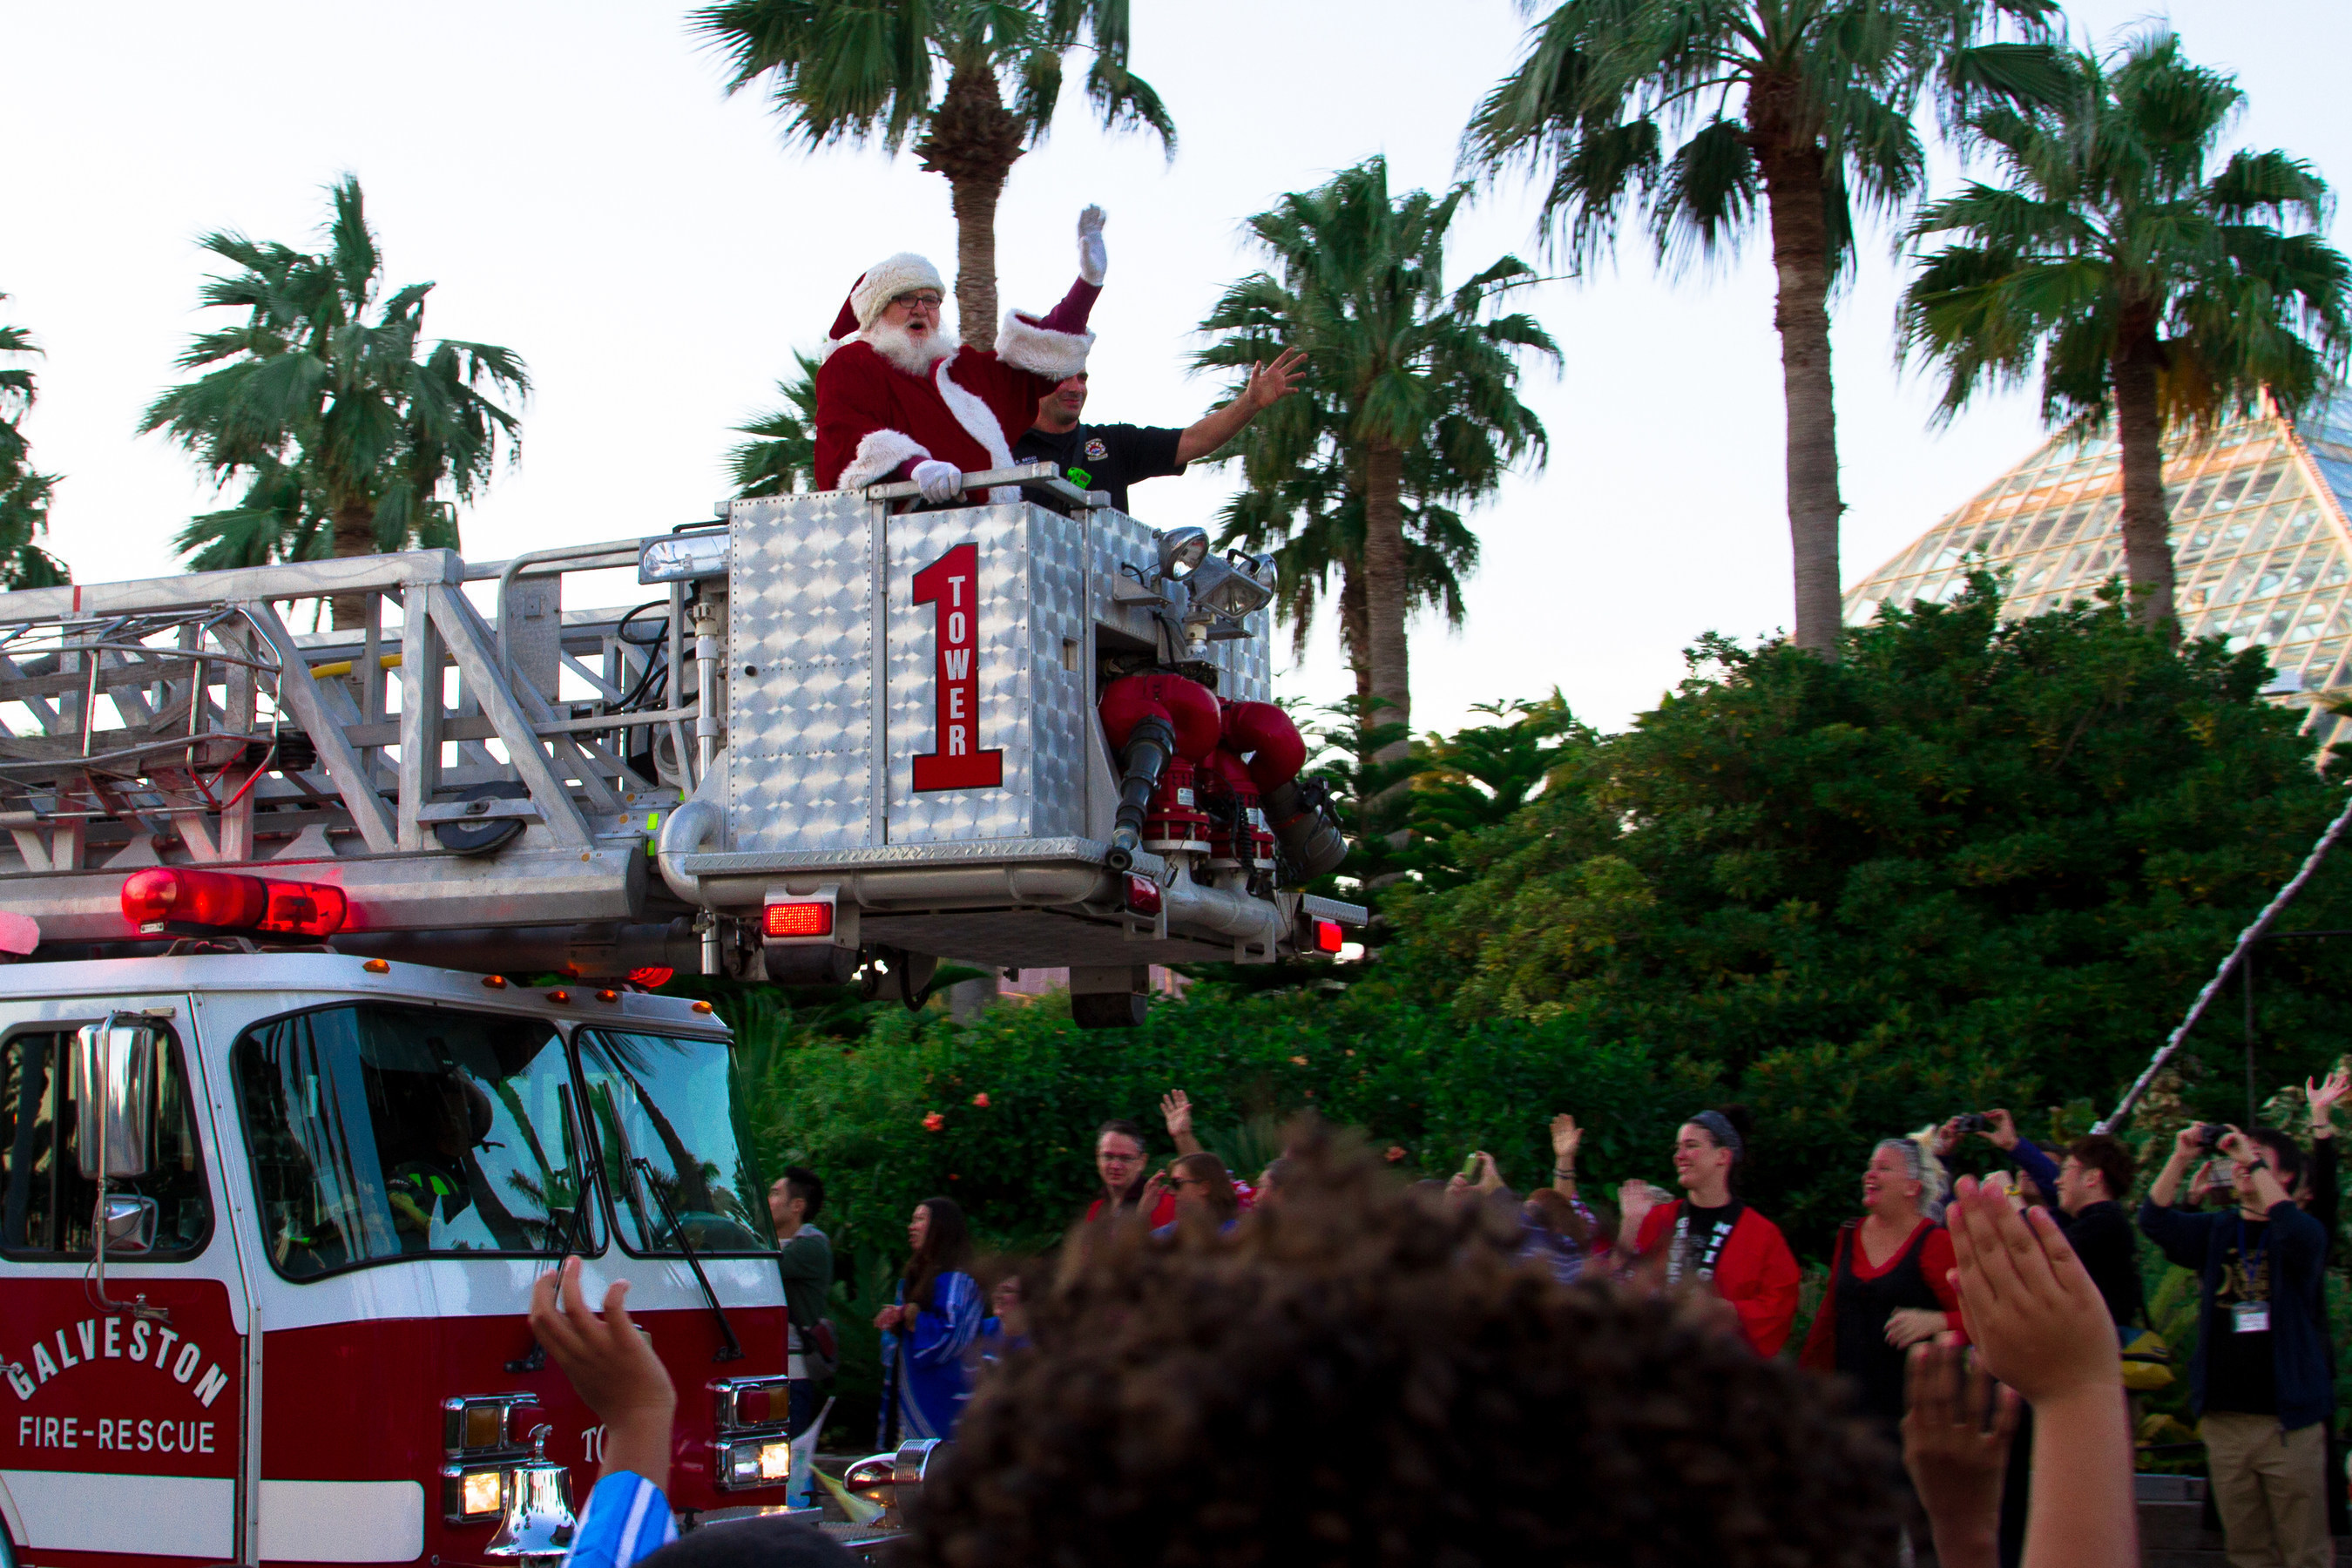 Santa arrived in grand style by fire truck to kick off the holiday season at the opening of Moody Gardens Festival of Lights Saturday in Galveston, TX